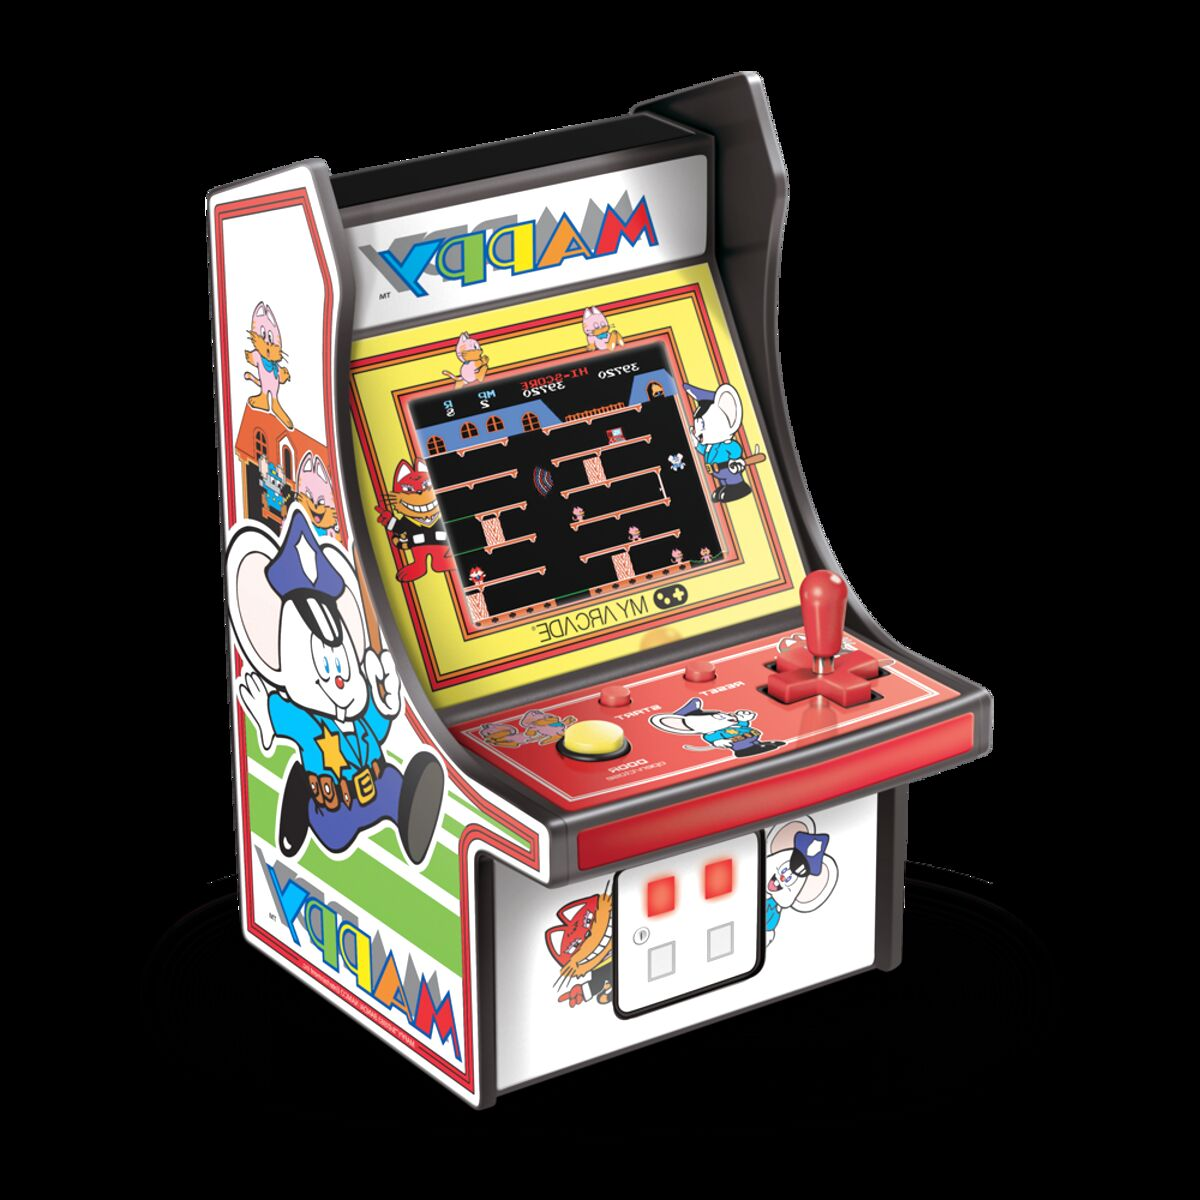 mappy arcade game for sale